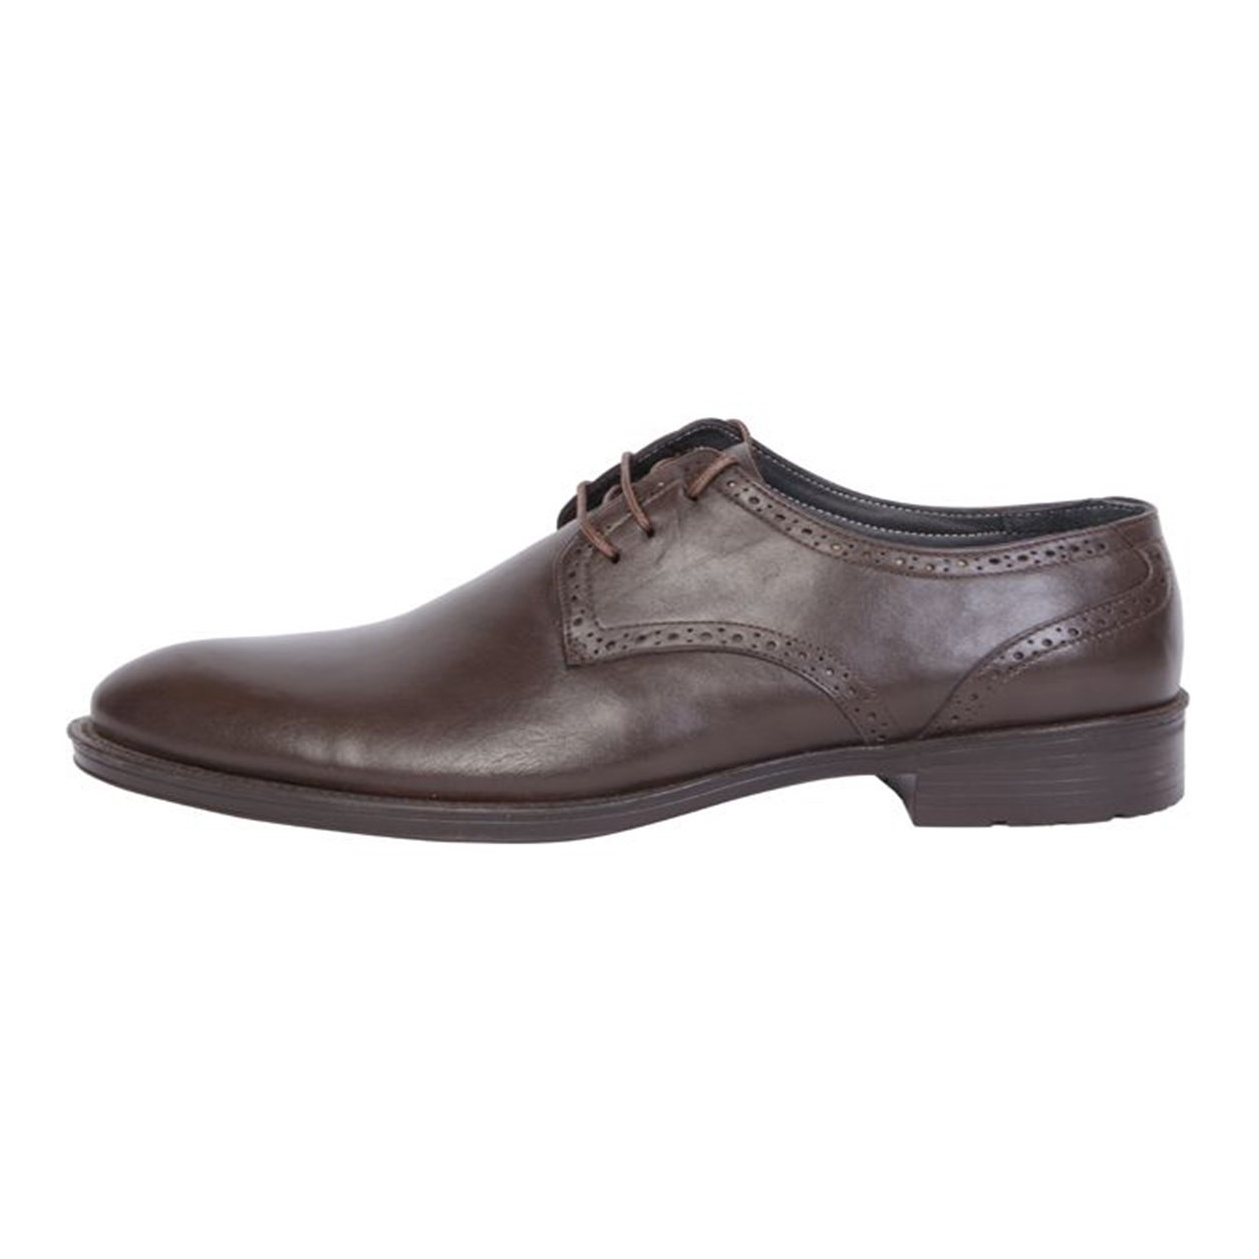 Mohajer leather men's shoes, M22GH Model